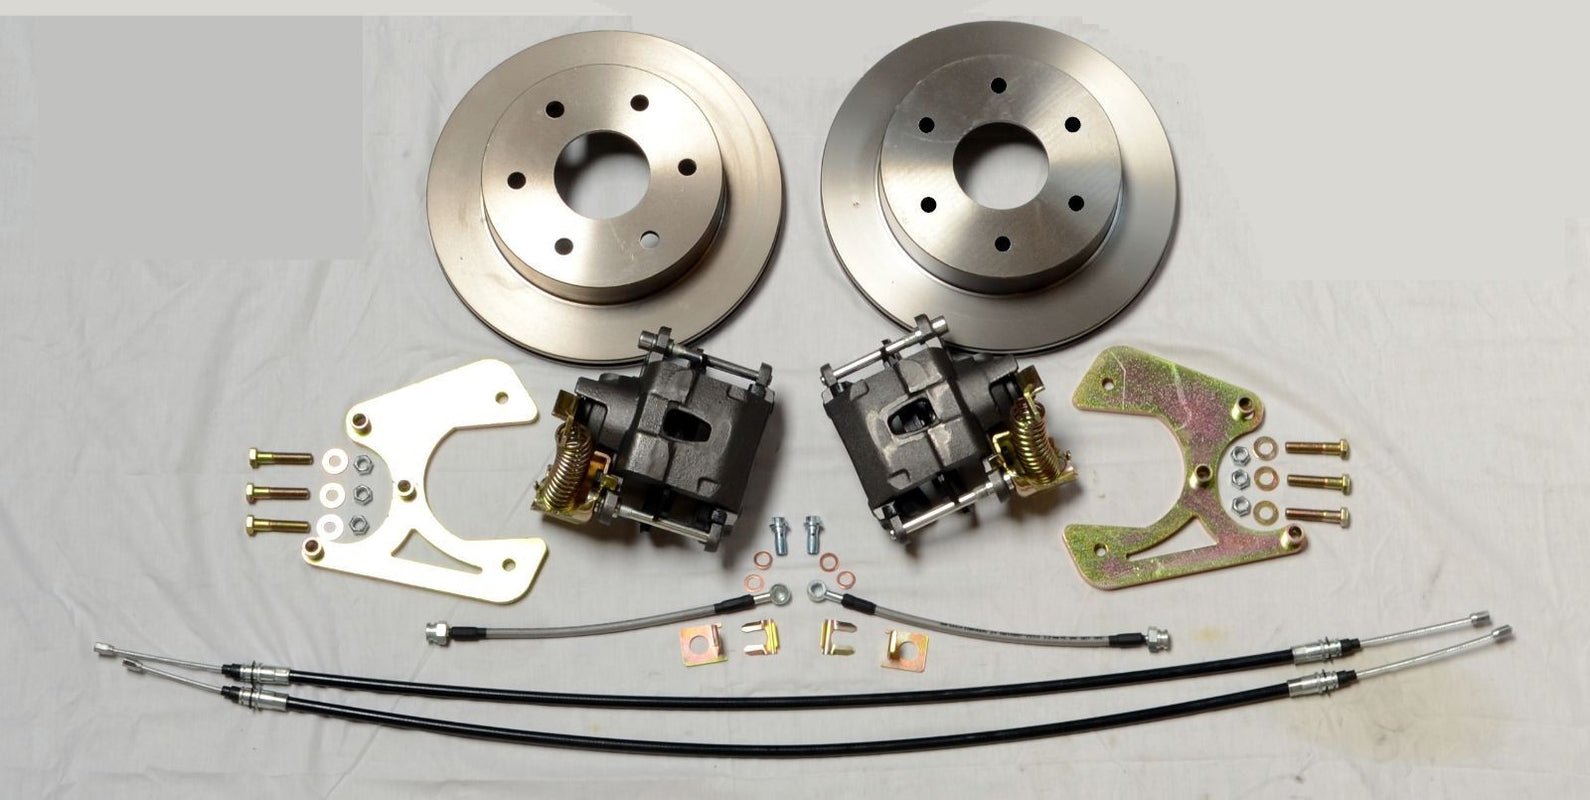 Buy 1963-1970 Chevrolet C10 Rear Disc Brake Conversion 6X5 5 Bolt Pattern  W/ E-brake at SAE-Speed for only $449 99